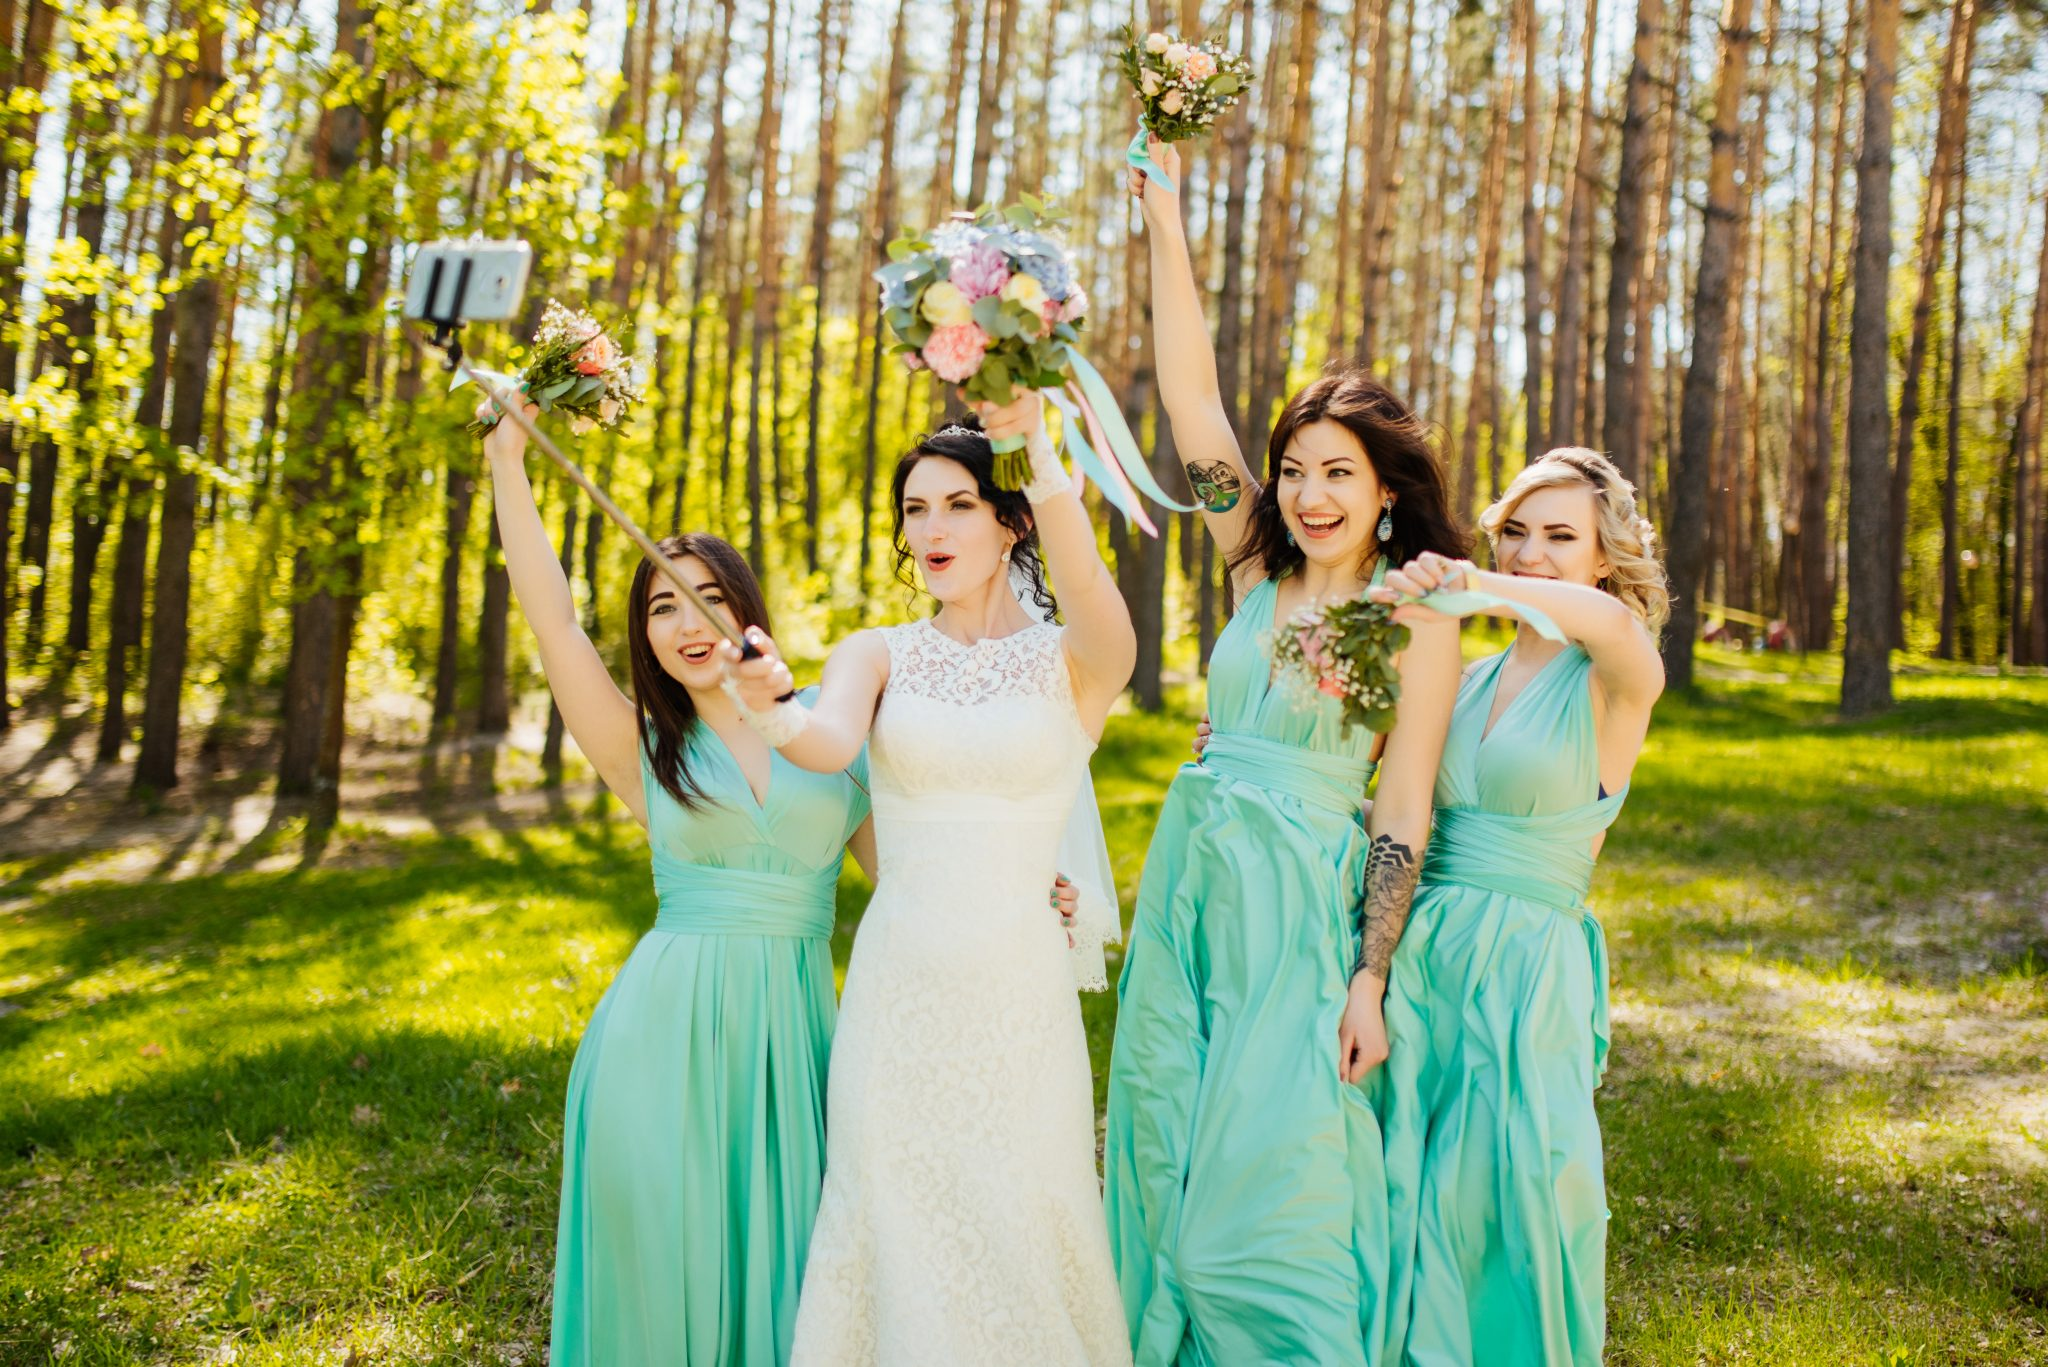 bridesmaid-flowers-bouquets